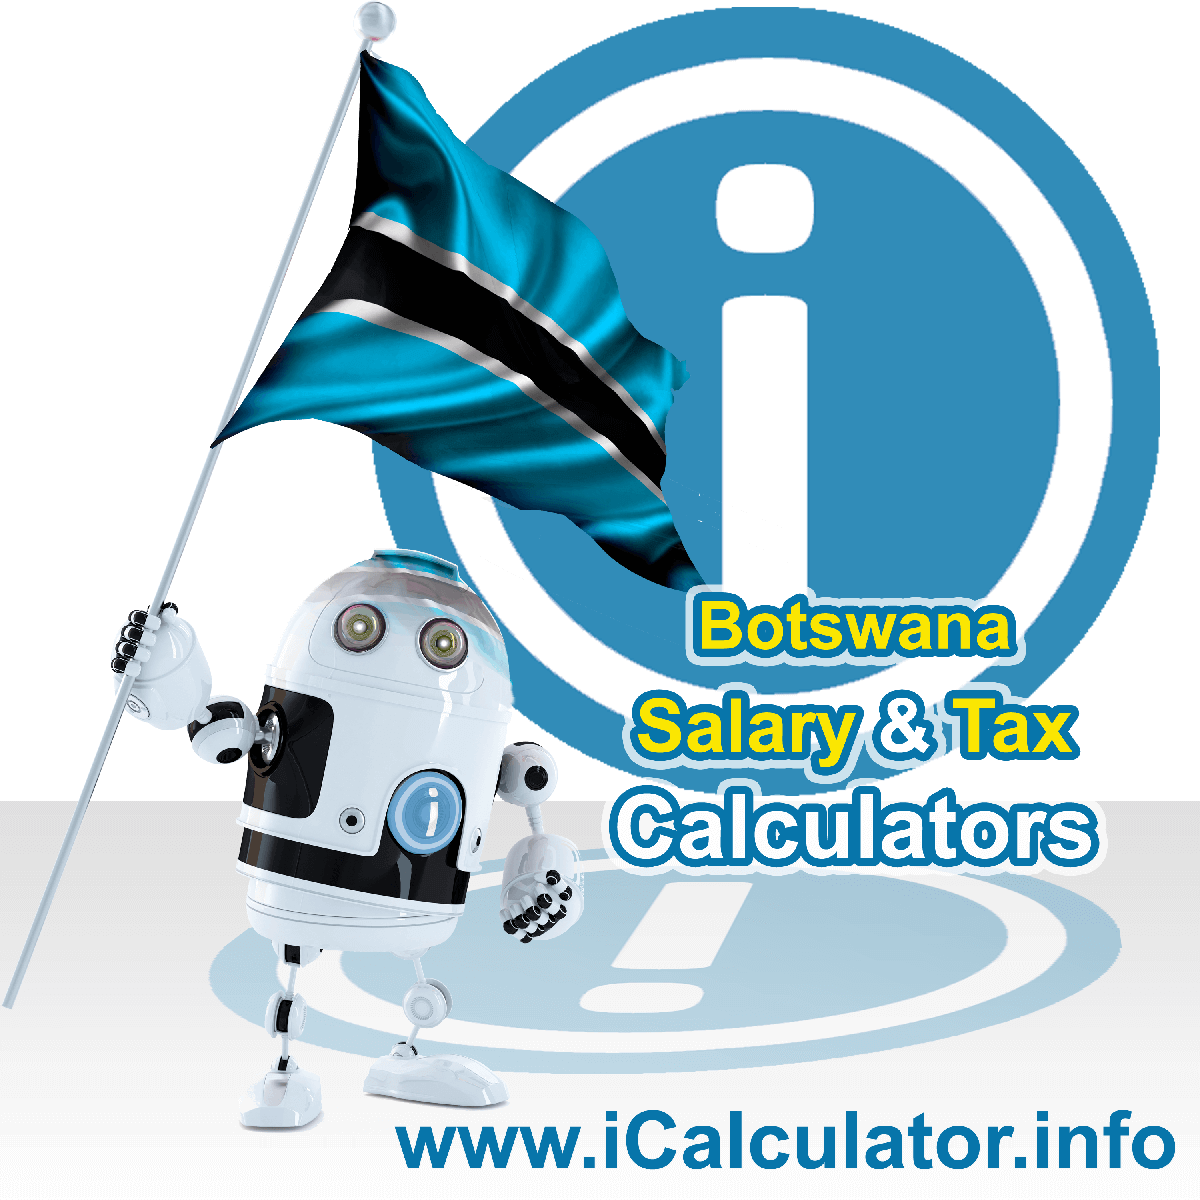 Botswana Tax Calculator. This image shows the Botswana flag and information relating to the tax formula for the Botswana Salary Calculator